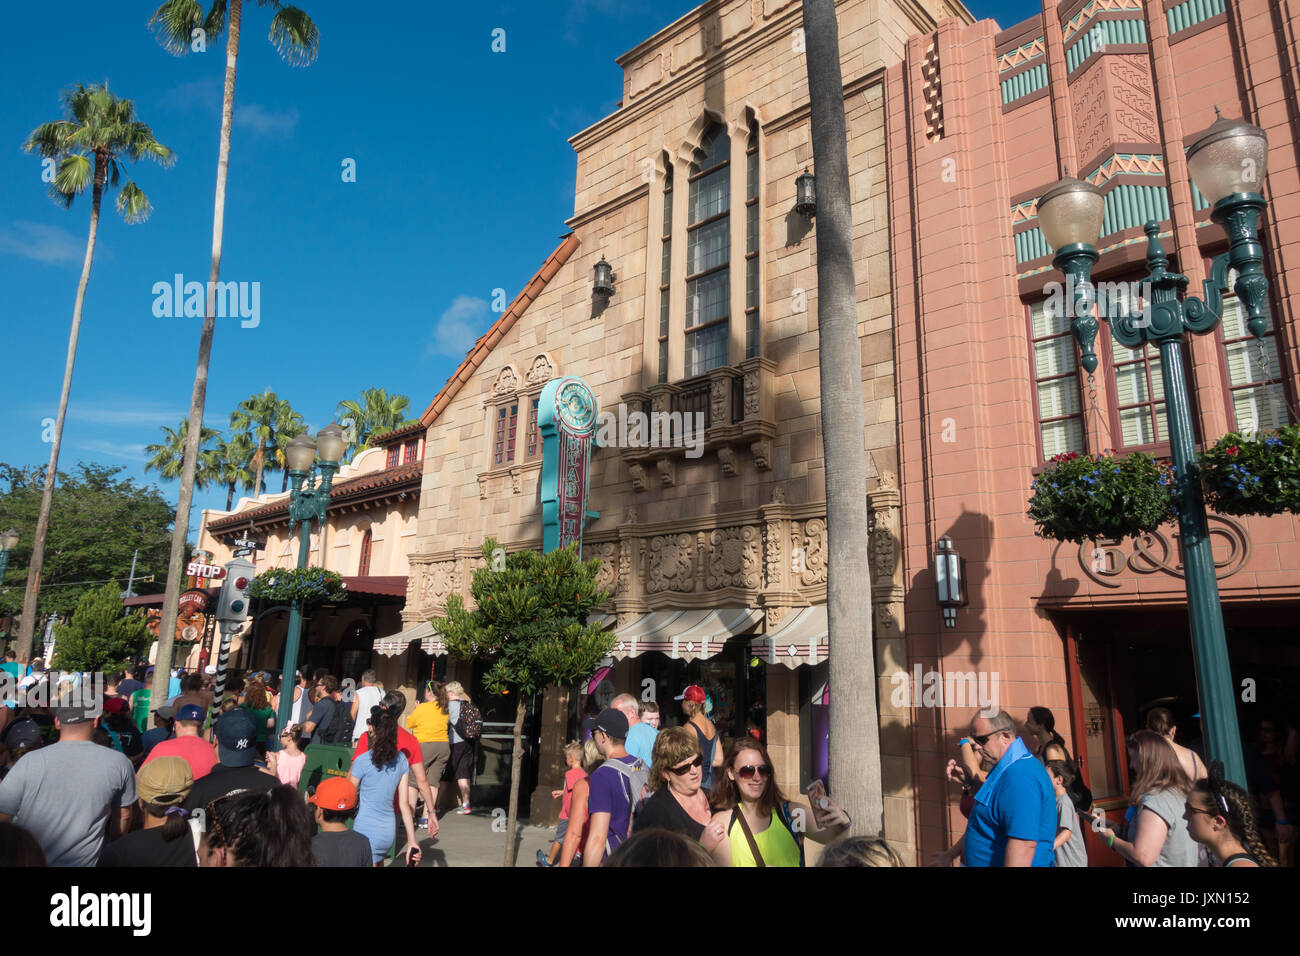 Adrian & Ediths Head to Toe in Hollywood Studios, Walt Disney World, Orlando, Florida. - Stock Image